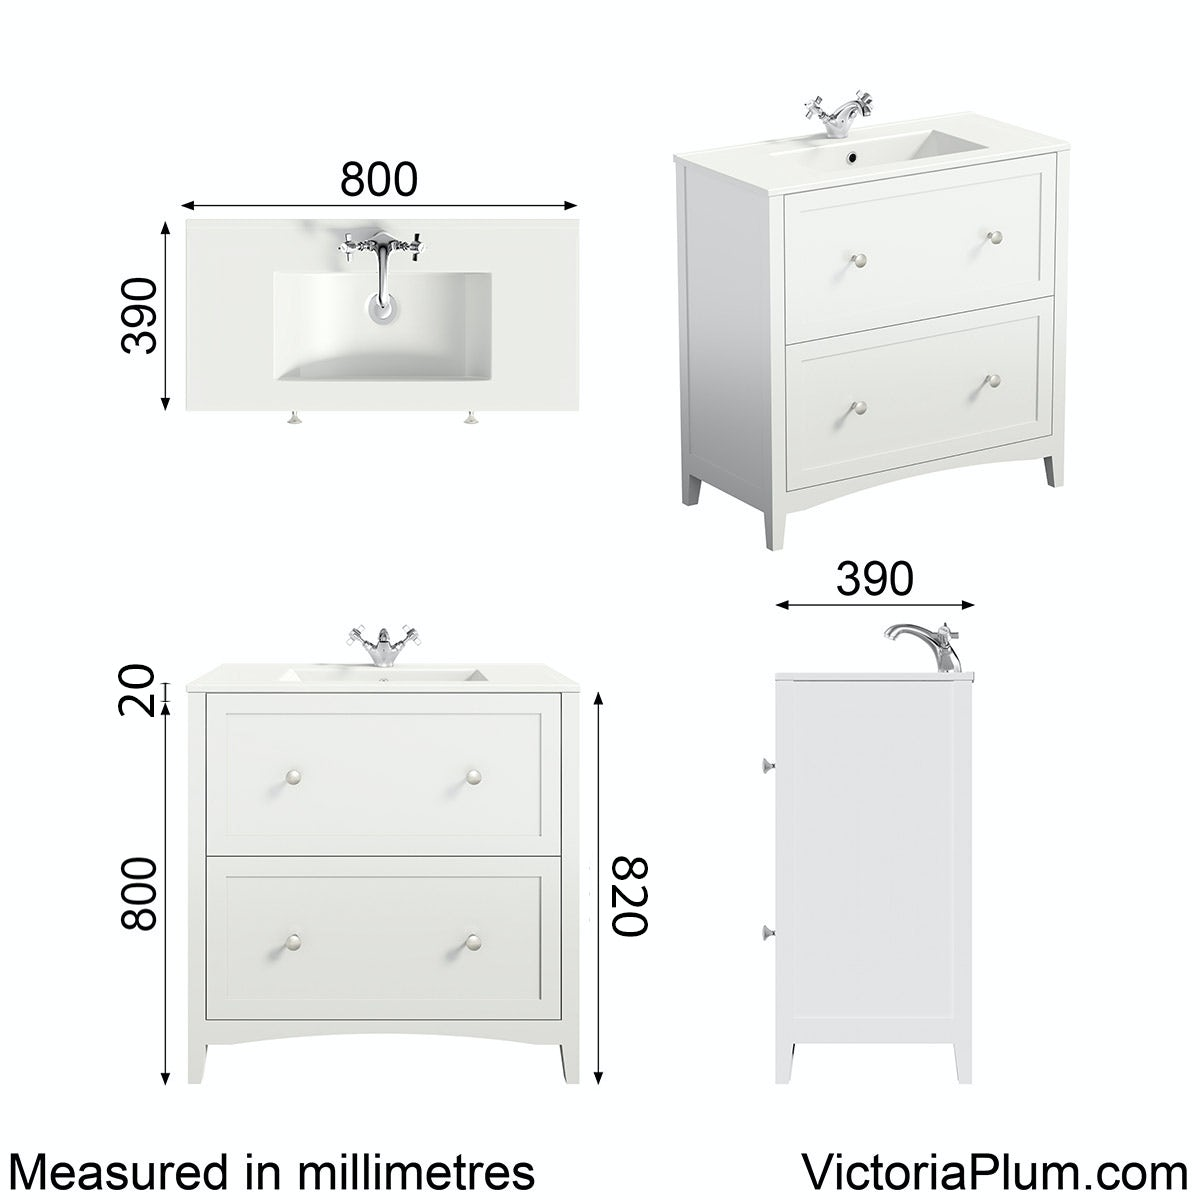 Dimensions for The Bath Co. Camberley white vanity unit with basin 800mm